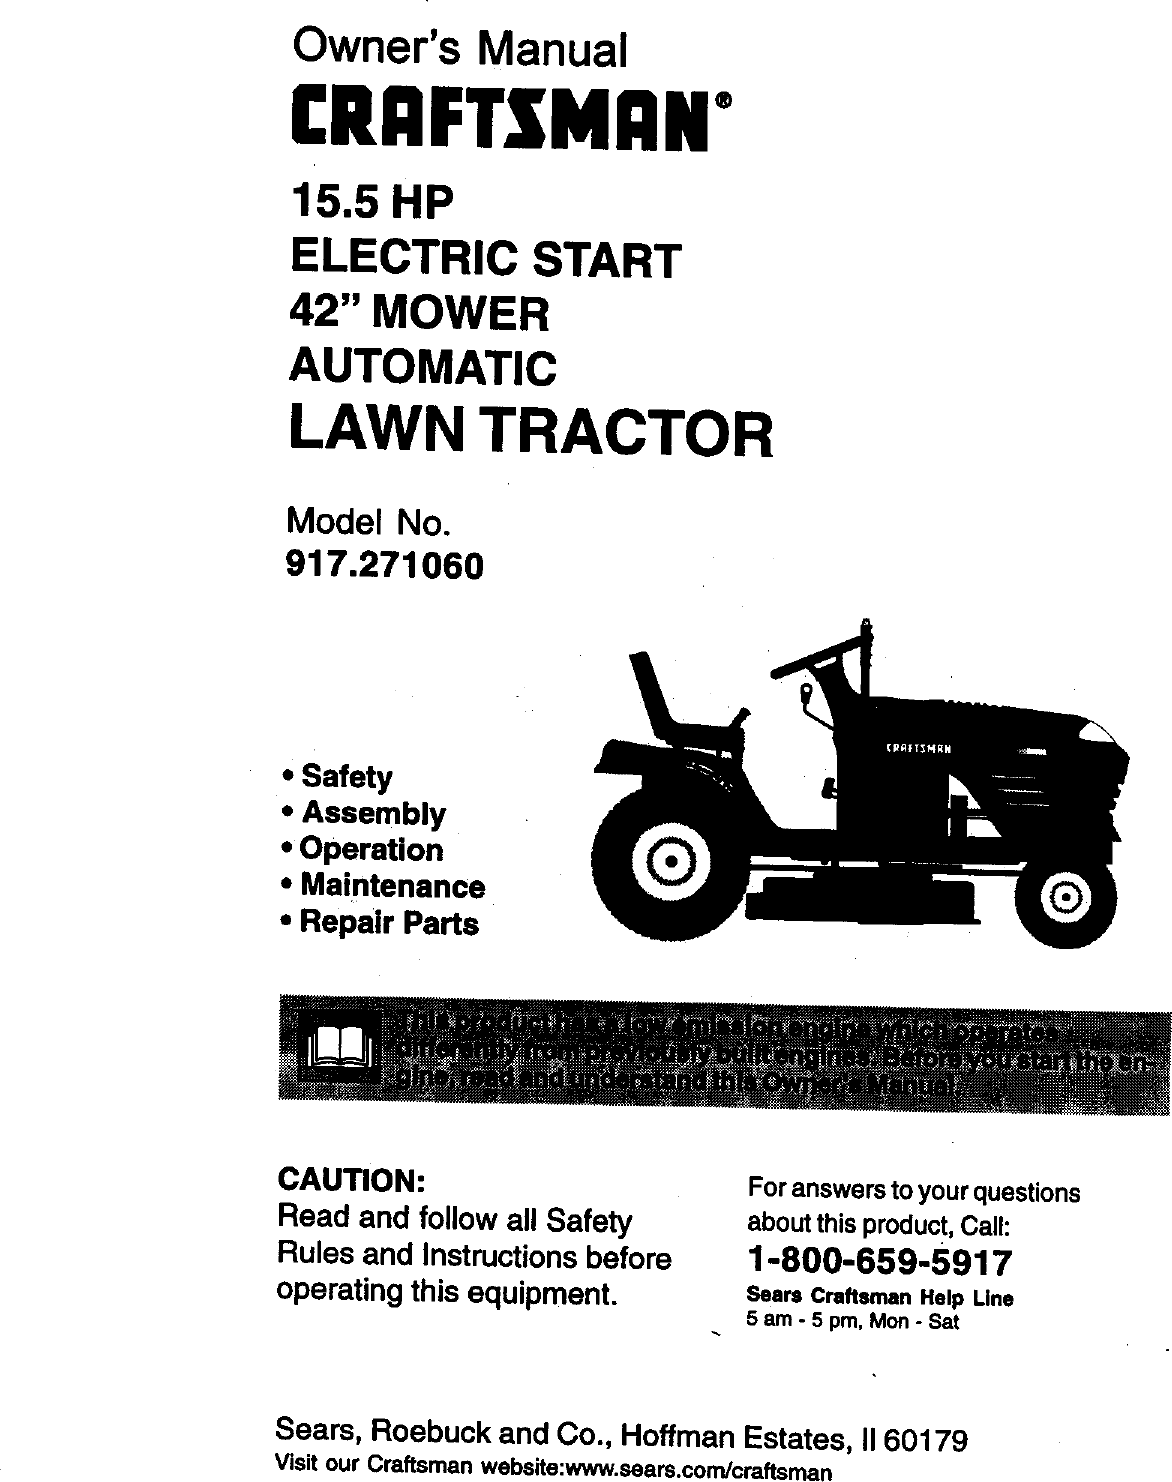 Craftsman 65 Lawn Mower Manual Ebook Weed Eater Pl200 Parts List And Diagram Type 1 Ereplacementparts Array 917271060 User 15 5hp 42 Automatic Tractor Rh Usermanual Wiki